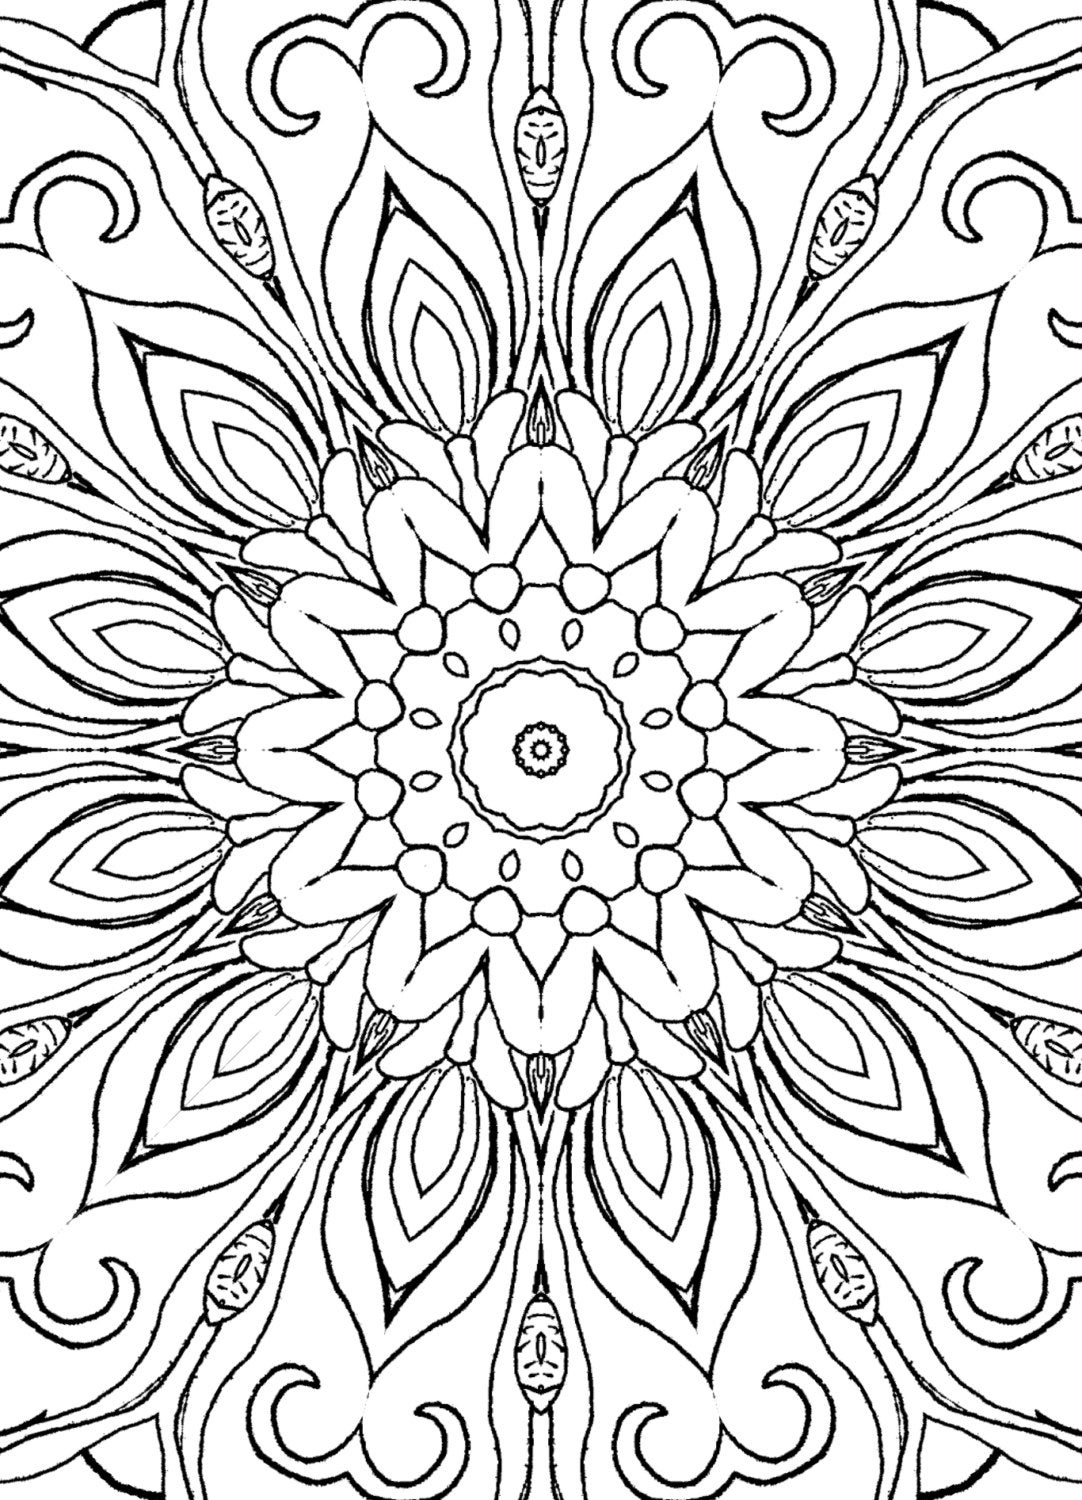 adult coloring page colorful turkey adult coloring page favecraftscom adult page coloring